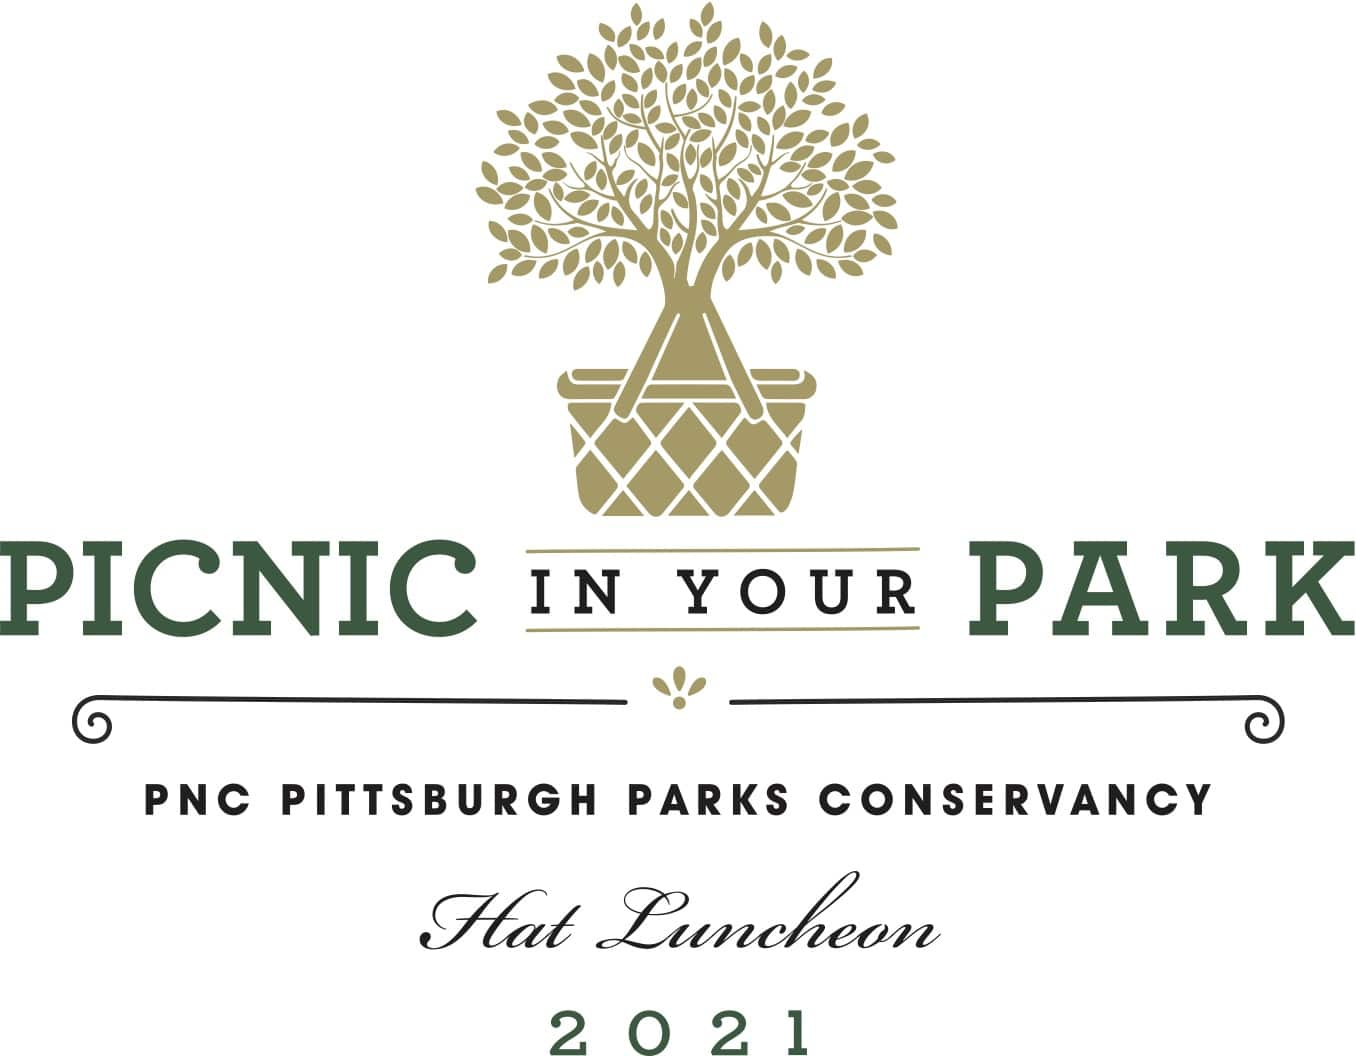 Picnic in Your Park banner